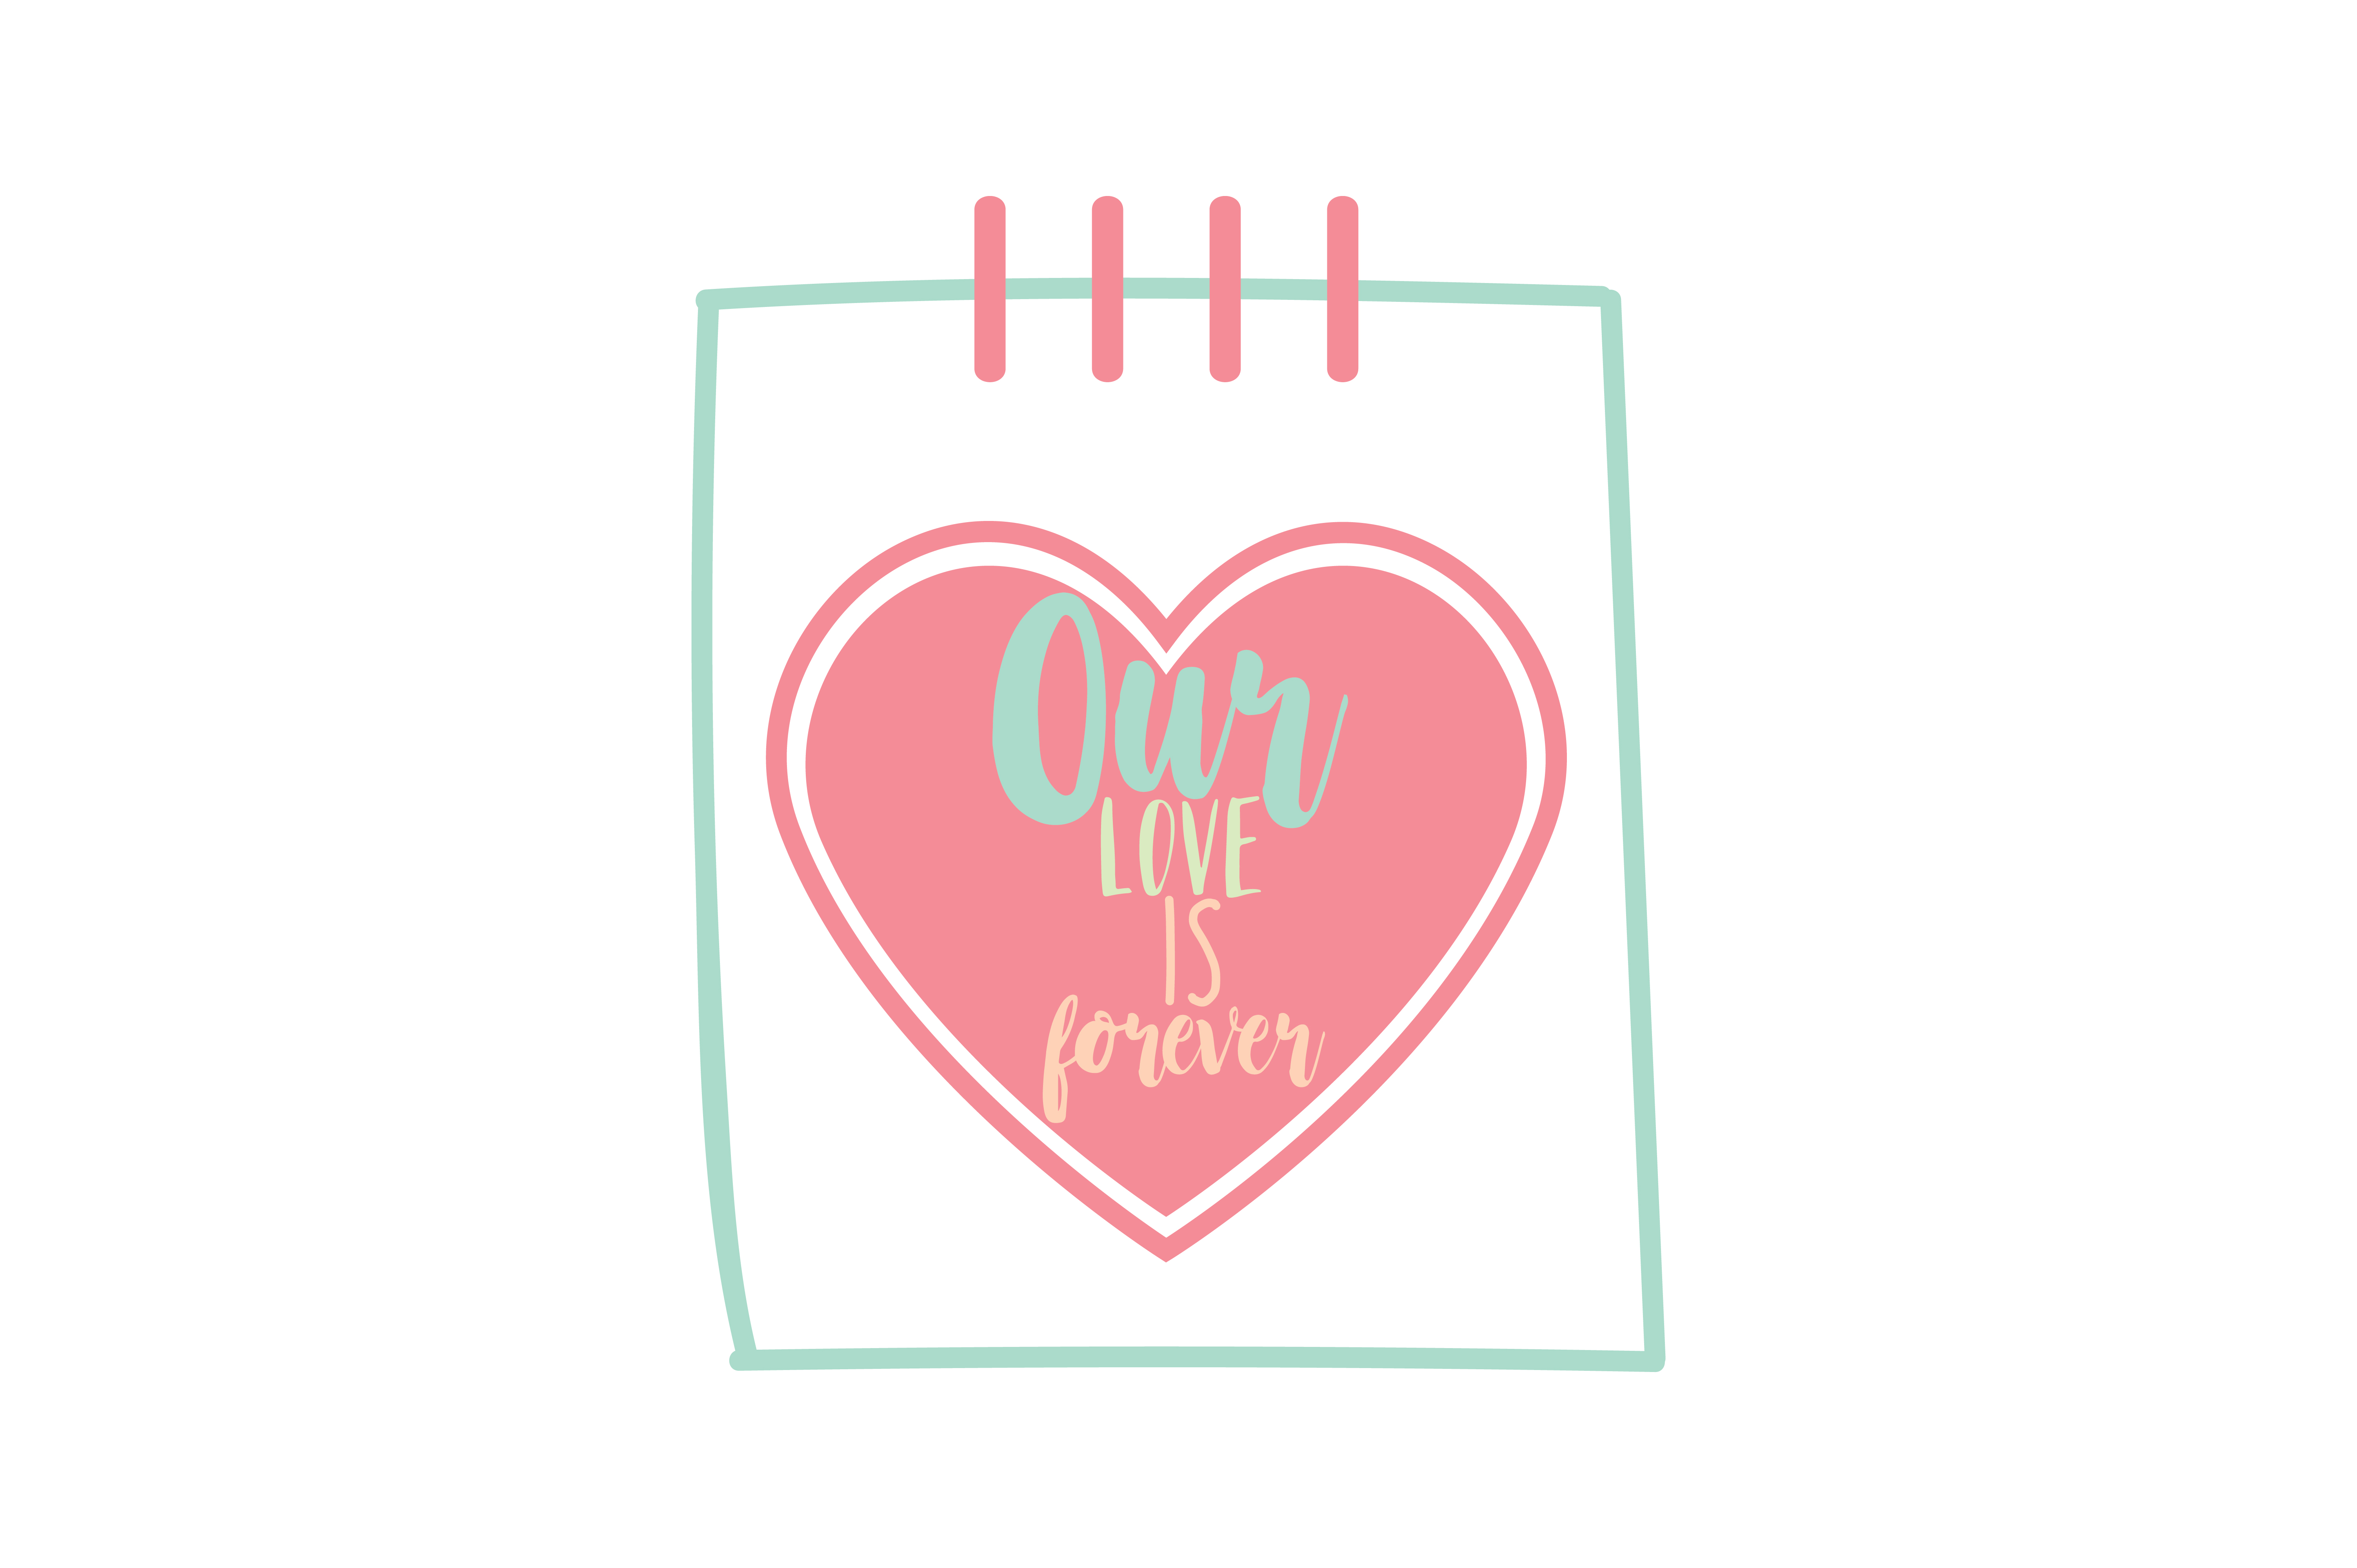 Download Free Our Love Is Forever Qoute Svg Cut Graphic By Thelucky Creative for Cricut Explore, Silhouette and other cutting machines.